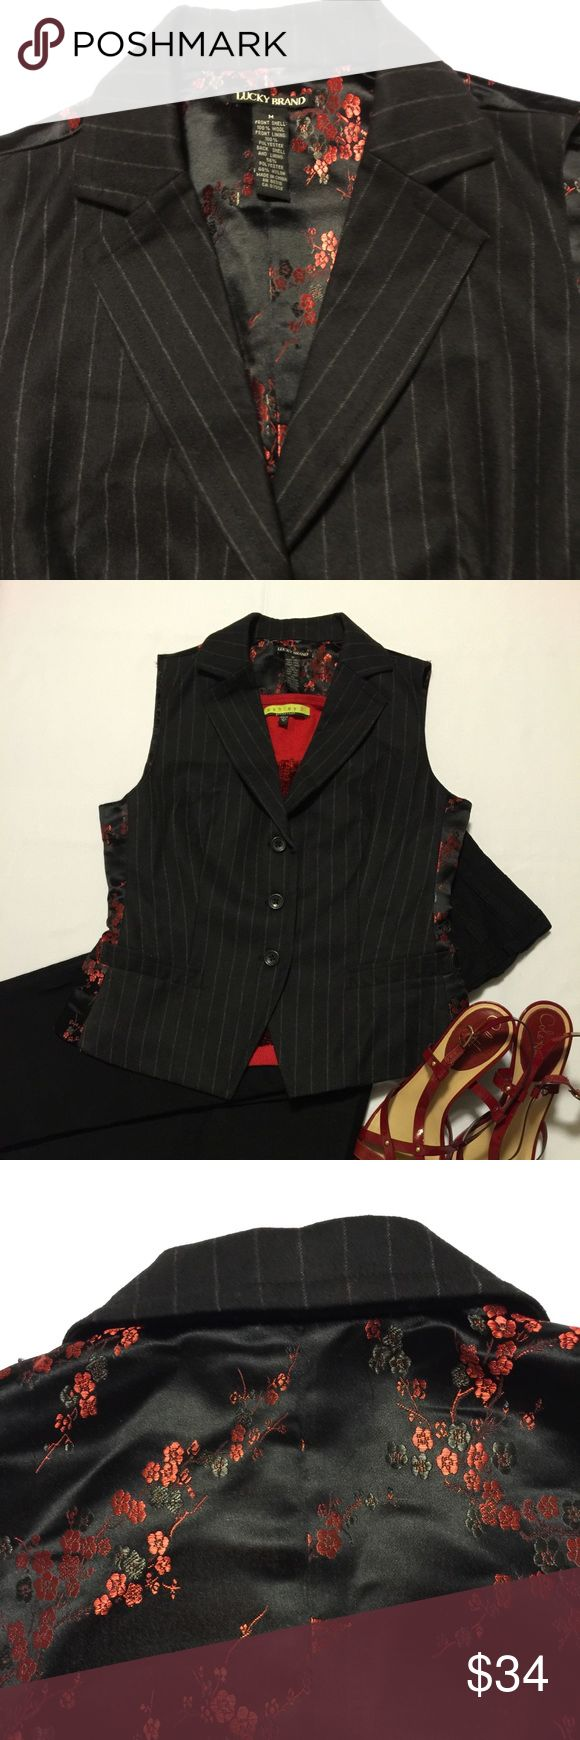 LUCKY BRAND black & red floral vest, size Medium Sharp addition to your wardrobe! Front is black with small pinstripe & back is beautiful satiny red floral design. EUC, so classy! Lucky Brand Tops